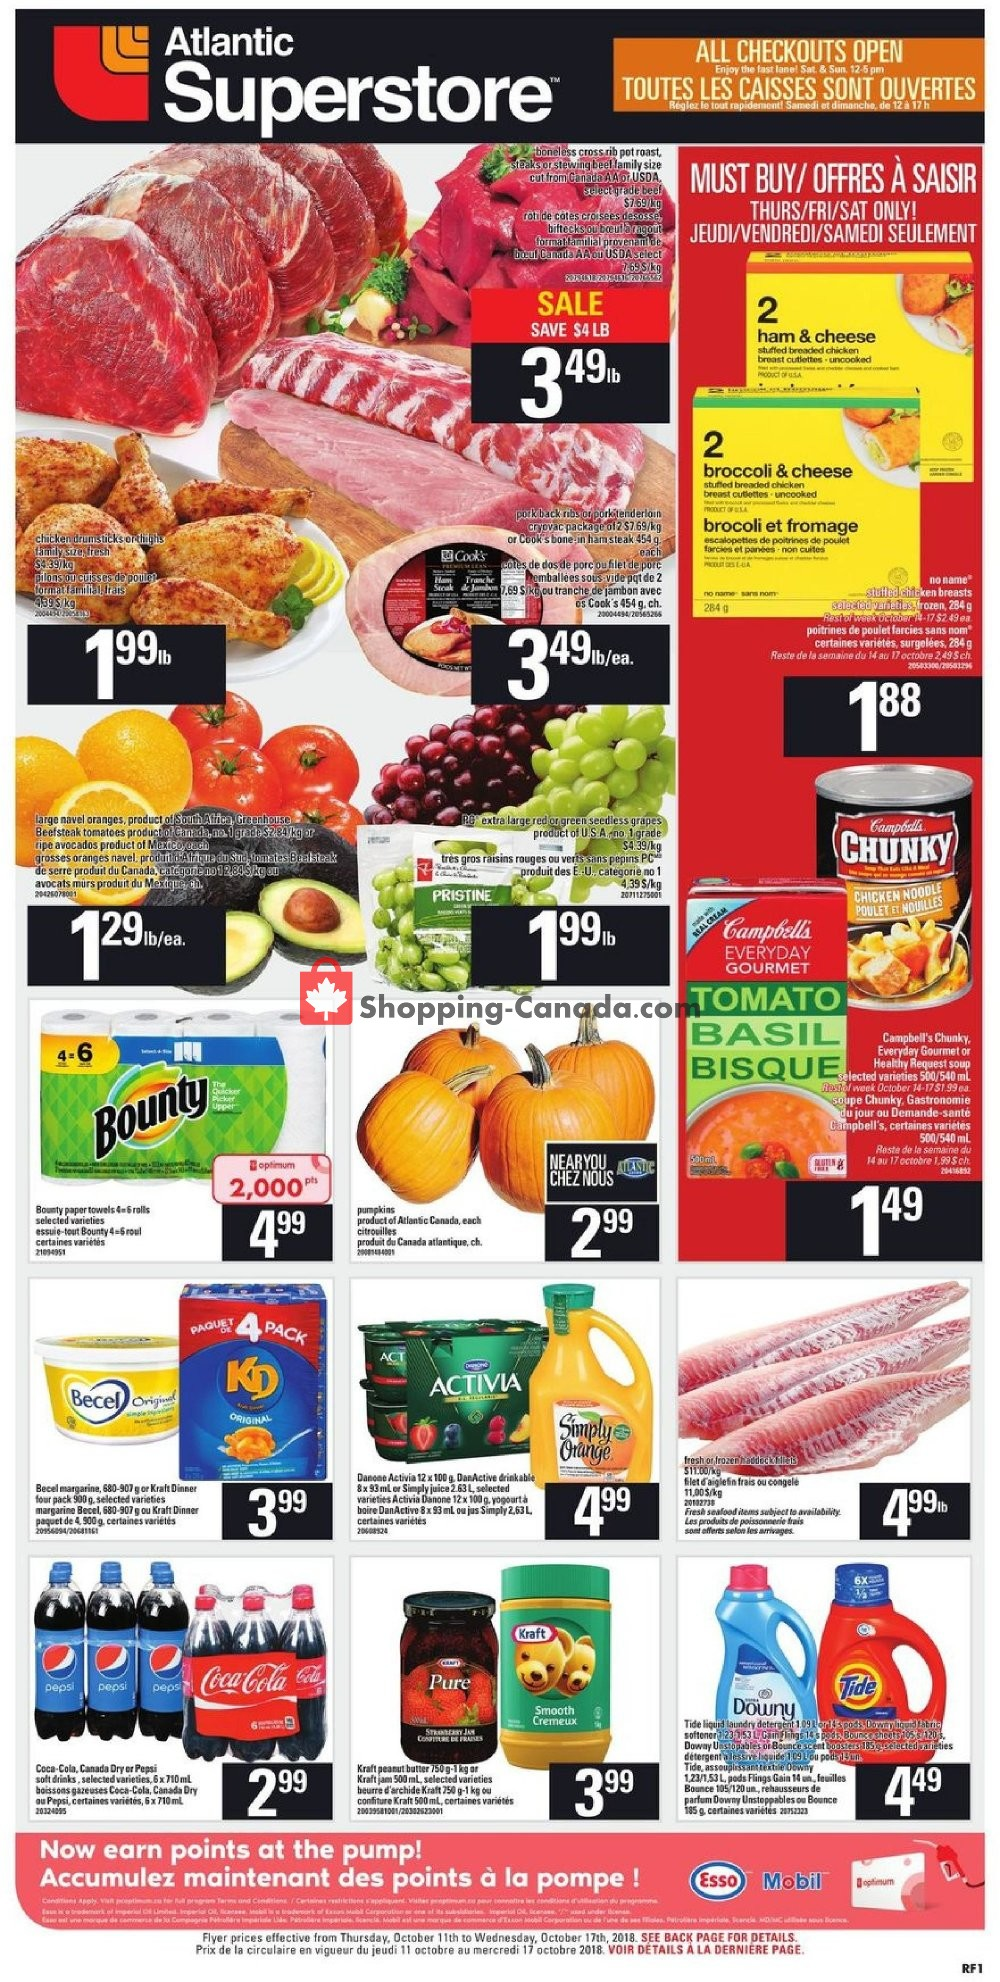 Flyer Atlantic Superstore Canada - from Thursday October 11, 2018 to Wednesday October 17, 2018